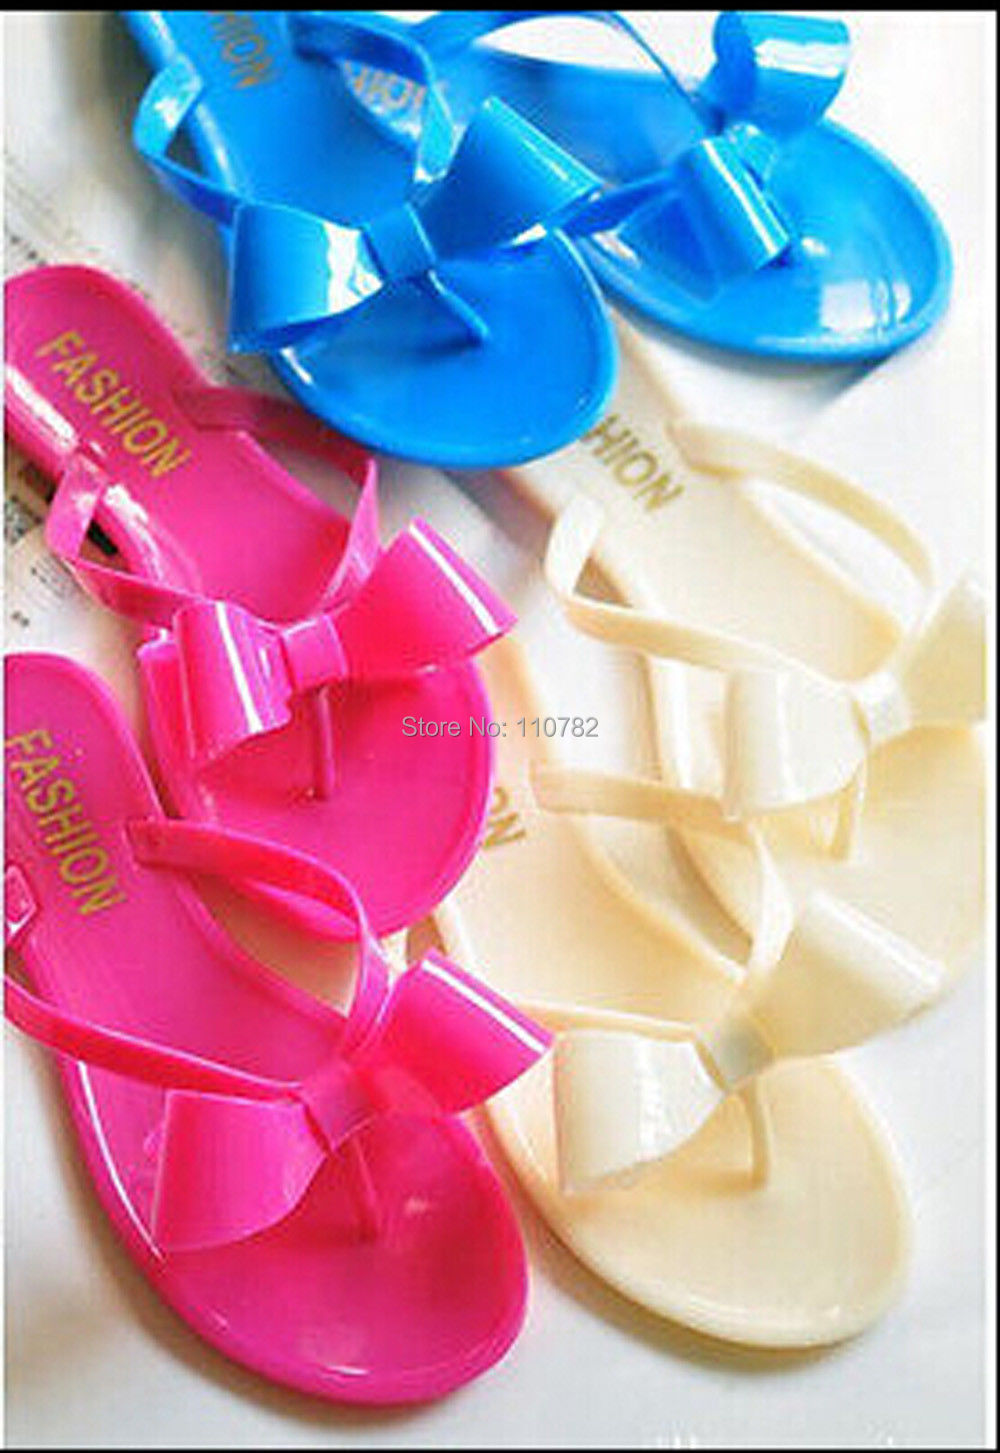 078e6455d45c 2014 Designer Summer Ribbon Bow Jelly Soft Plastic Sandals Flats Thongs  Shoes